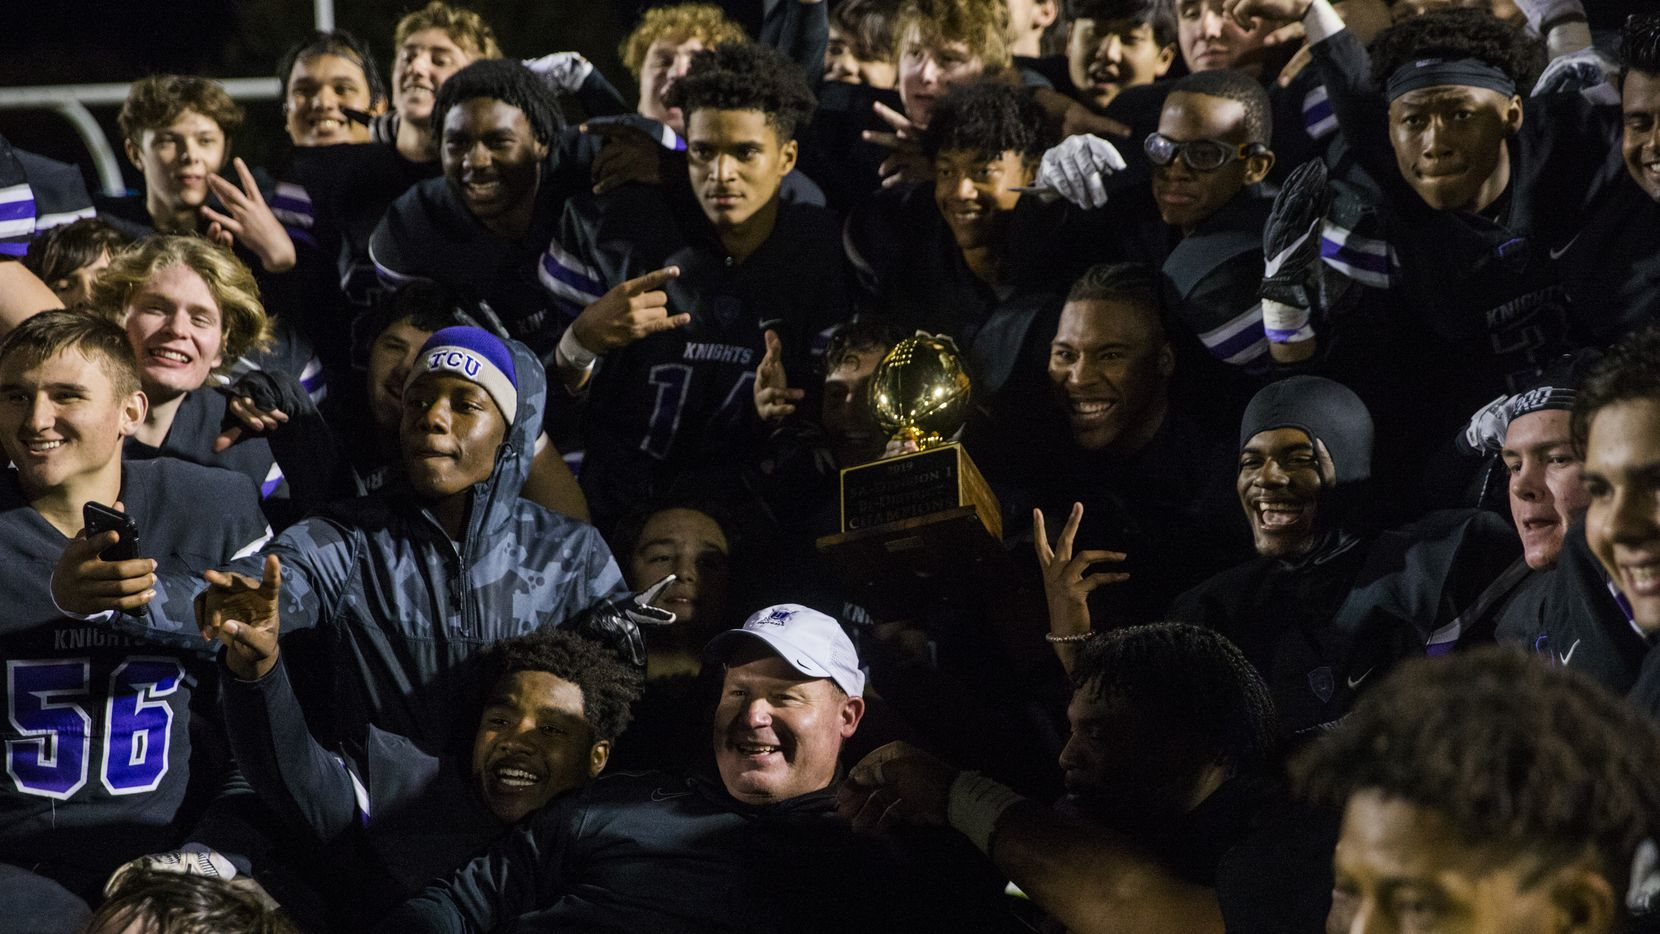 Frisco Independence football players pose for a photo with the bi-district championship trophy after a UIL Class 5A Division I first-round playoff football game between Mansfield Timberview and Frisco Independence on Thursday, November 14, 2019 at Frisco ISD Memorial Stadium in Frisco. Frisco Independence won 43-28.